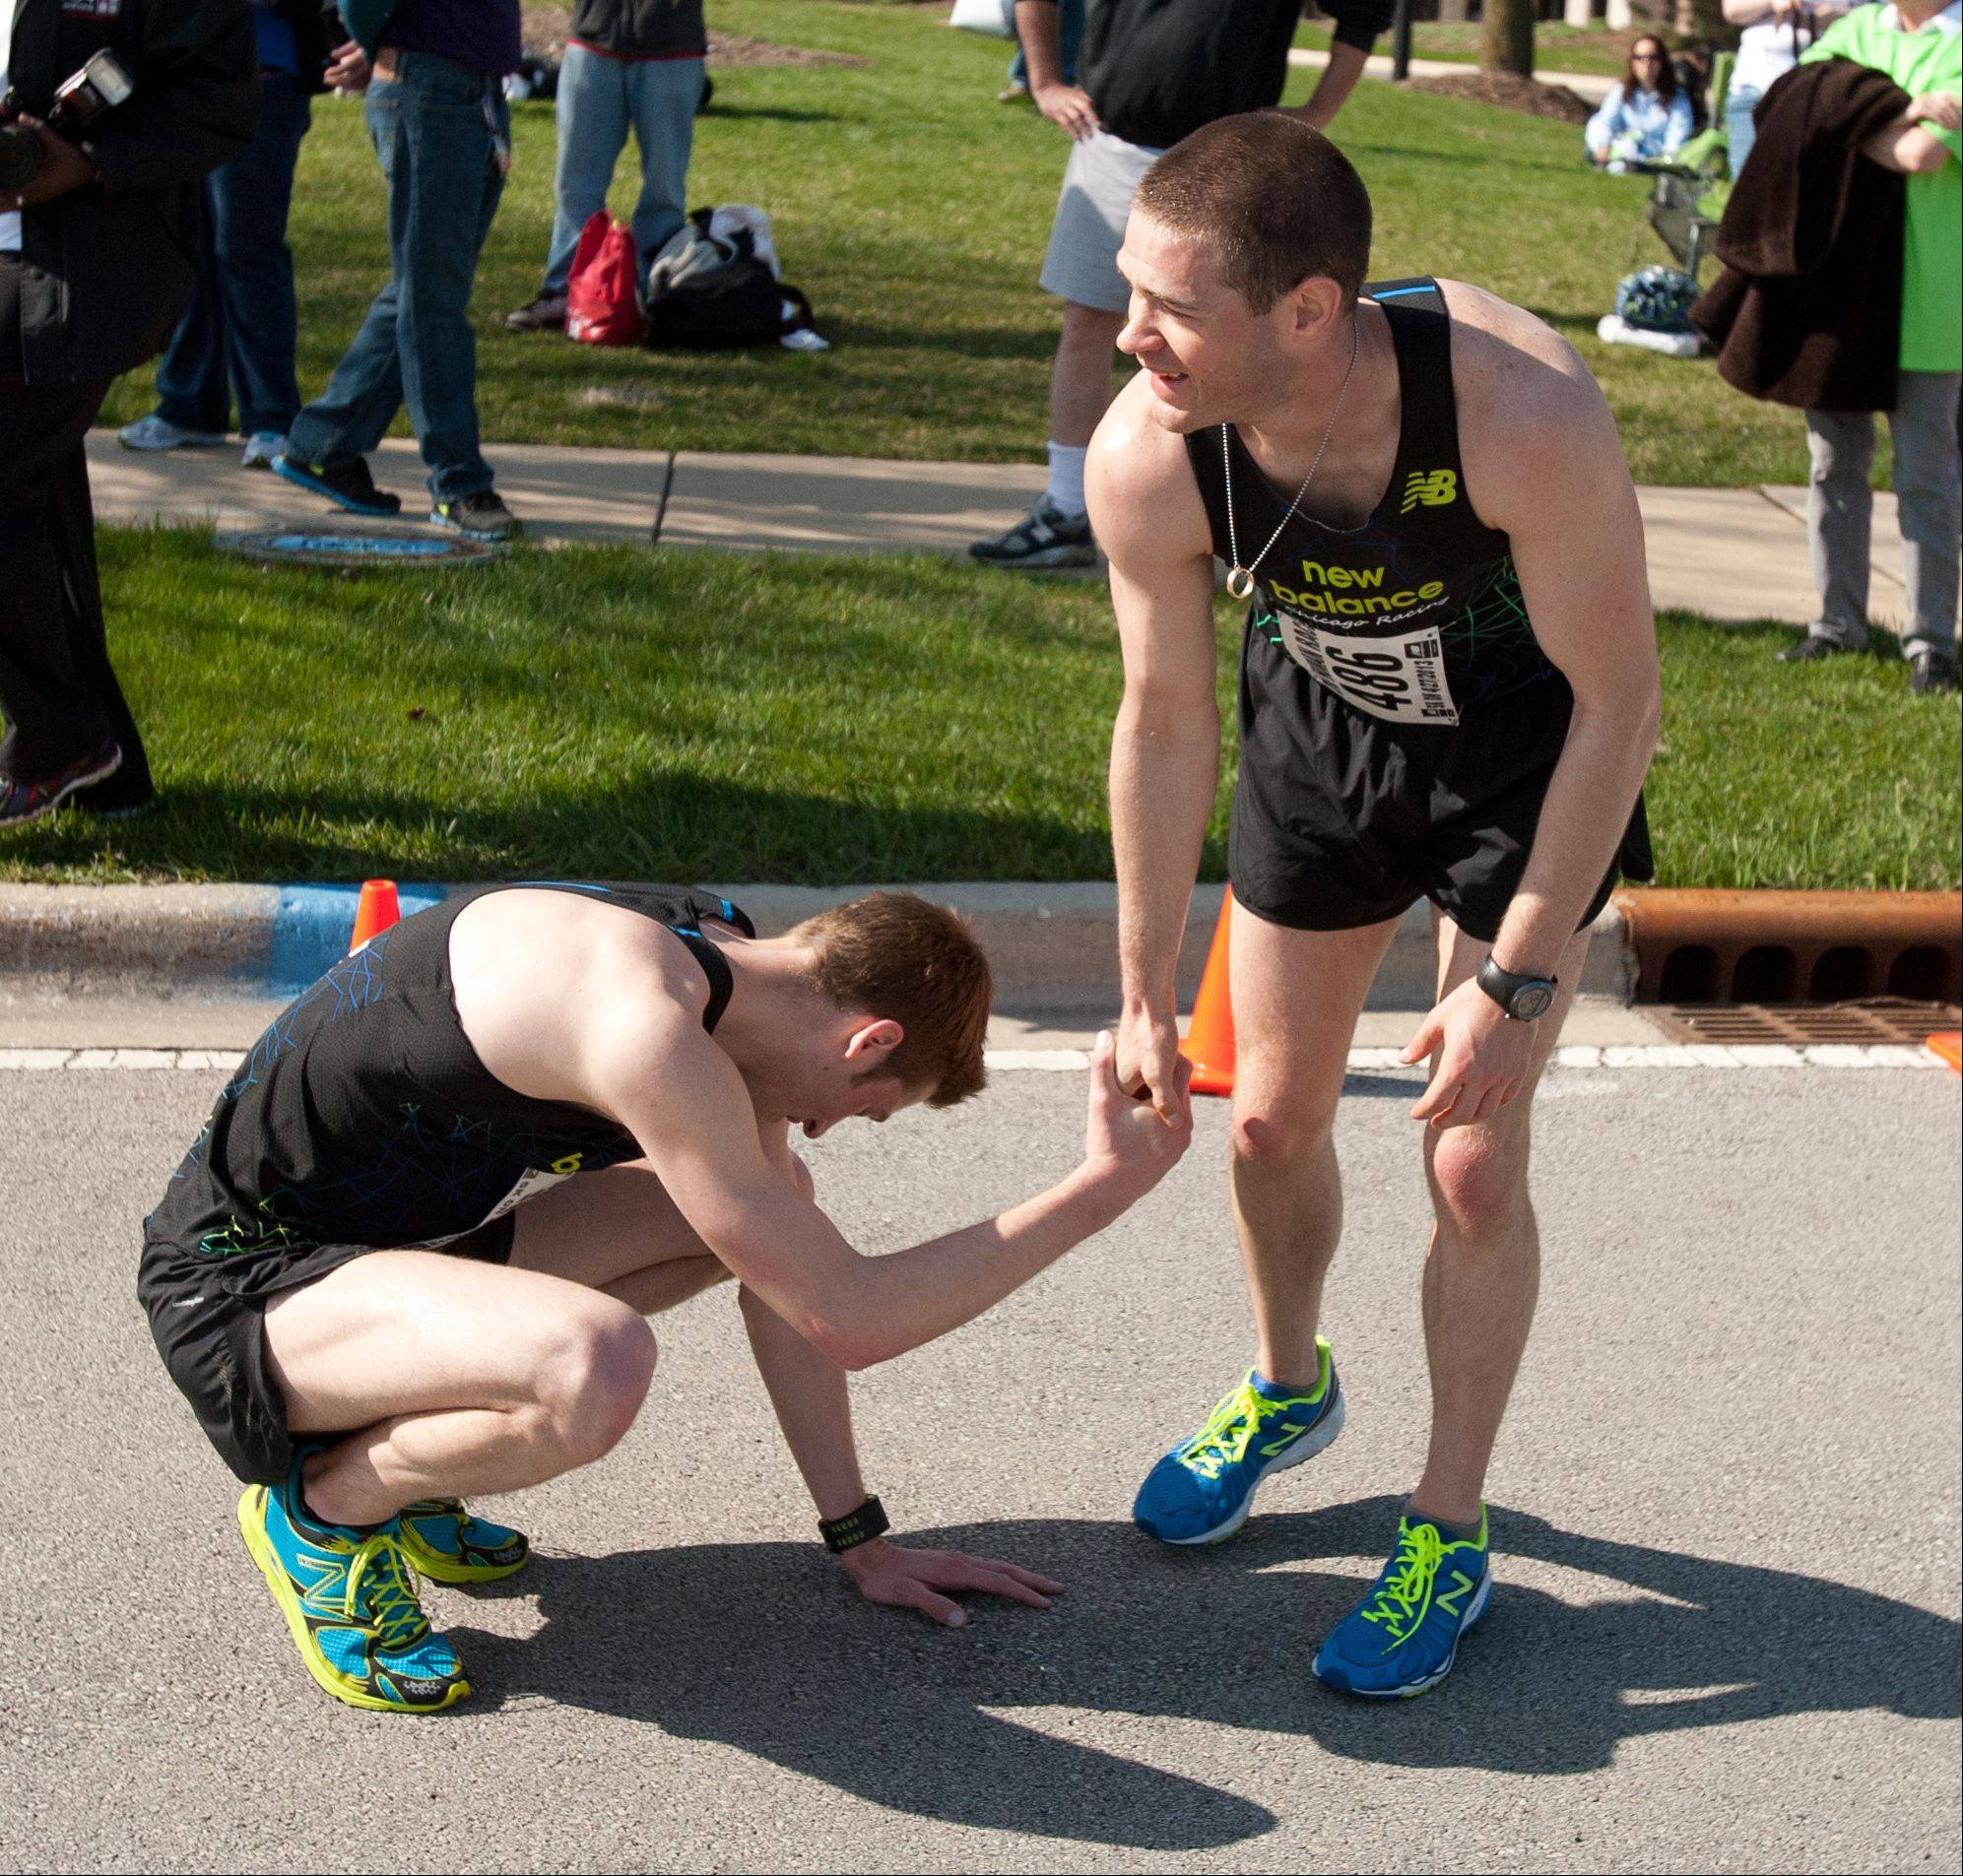 Patrick Austin of Plattville, Illinois congratulates a fellow New Balance team runner Saturday after finishing 5K run in the second annual Human Race hosted by Giving DuPage.